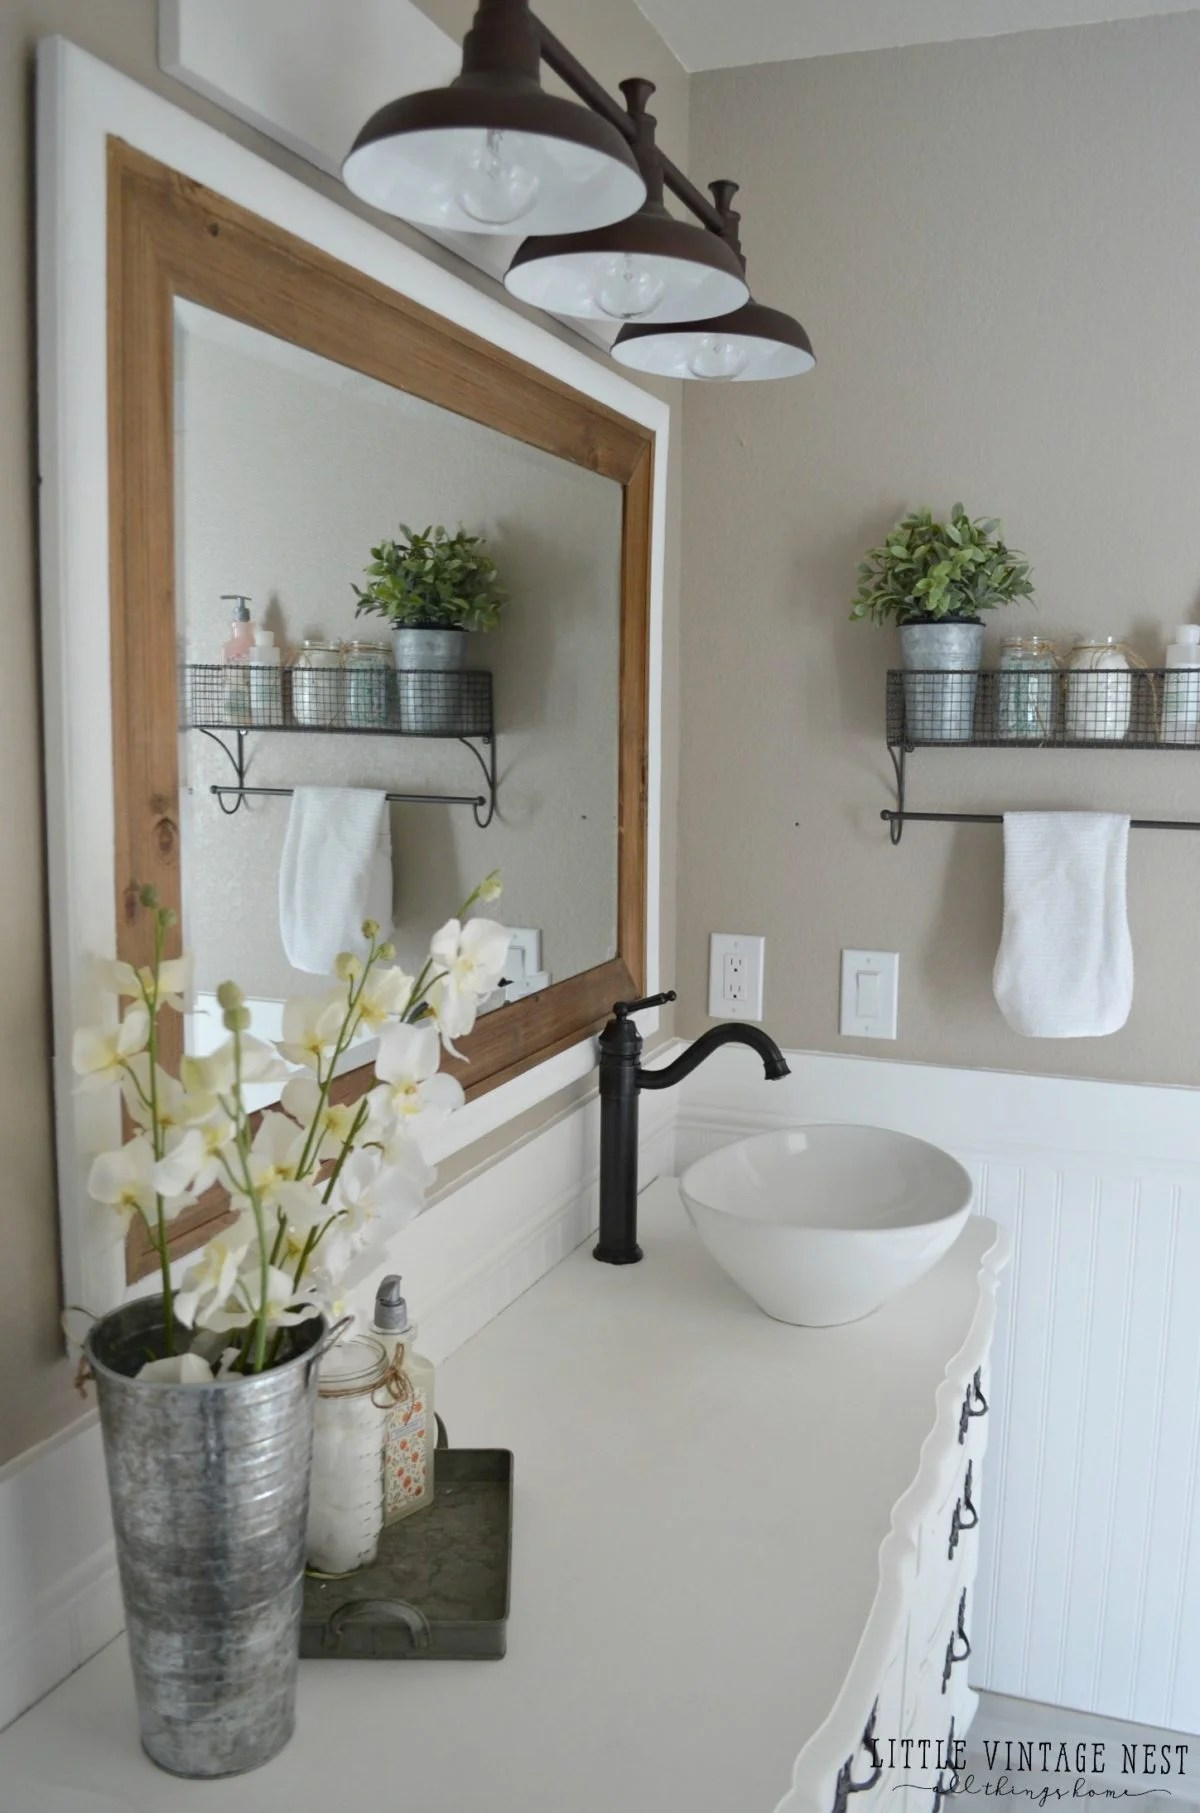 Splendiferous Light Farmhouse Master Bathroom Reveal Little Vintage Nest Farmhouse Bathroom Vanity Canada Farmhouse Bathroom Vanity Home Depot Farmhouse Bathroom Vanity houzz-03 Farmhouse Bathroom Vanity